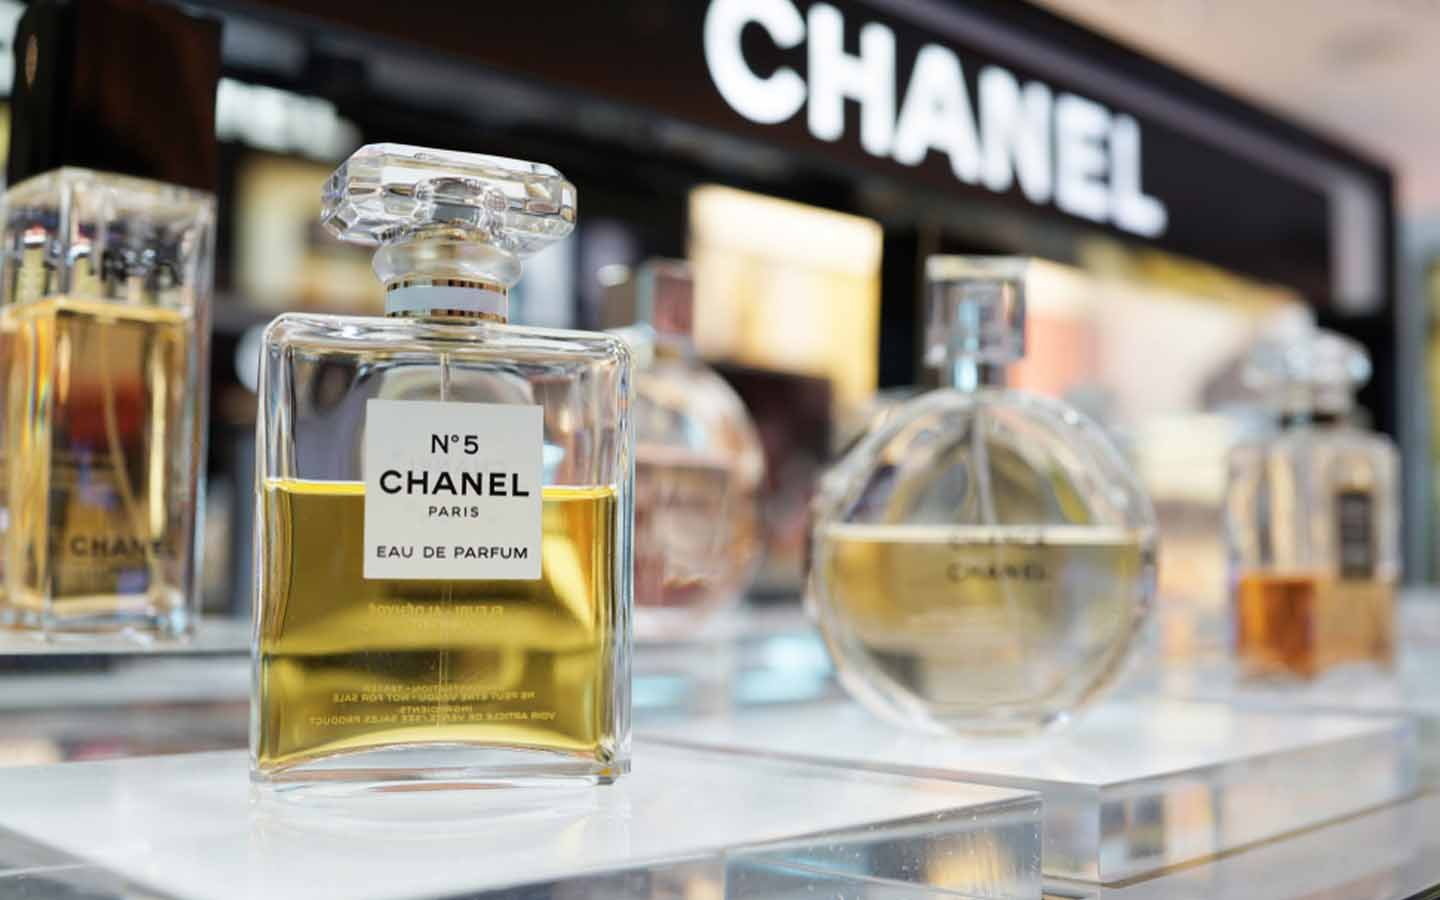 Chanel No. 5 is a popular brand of luxury perfume